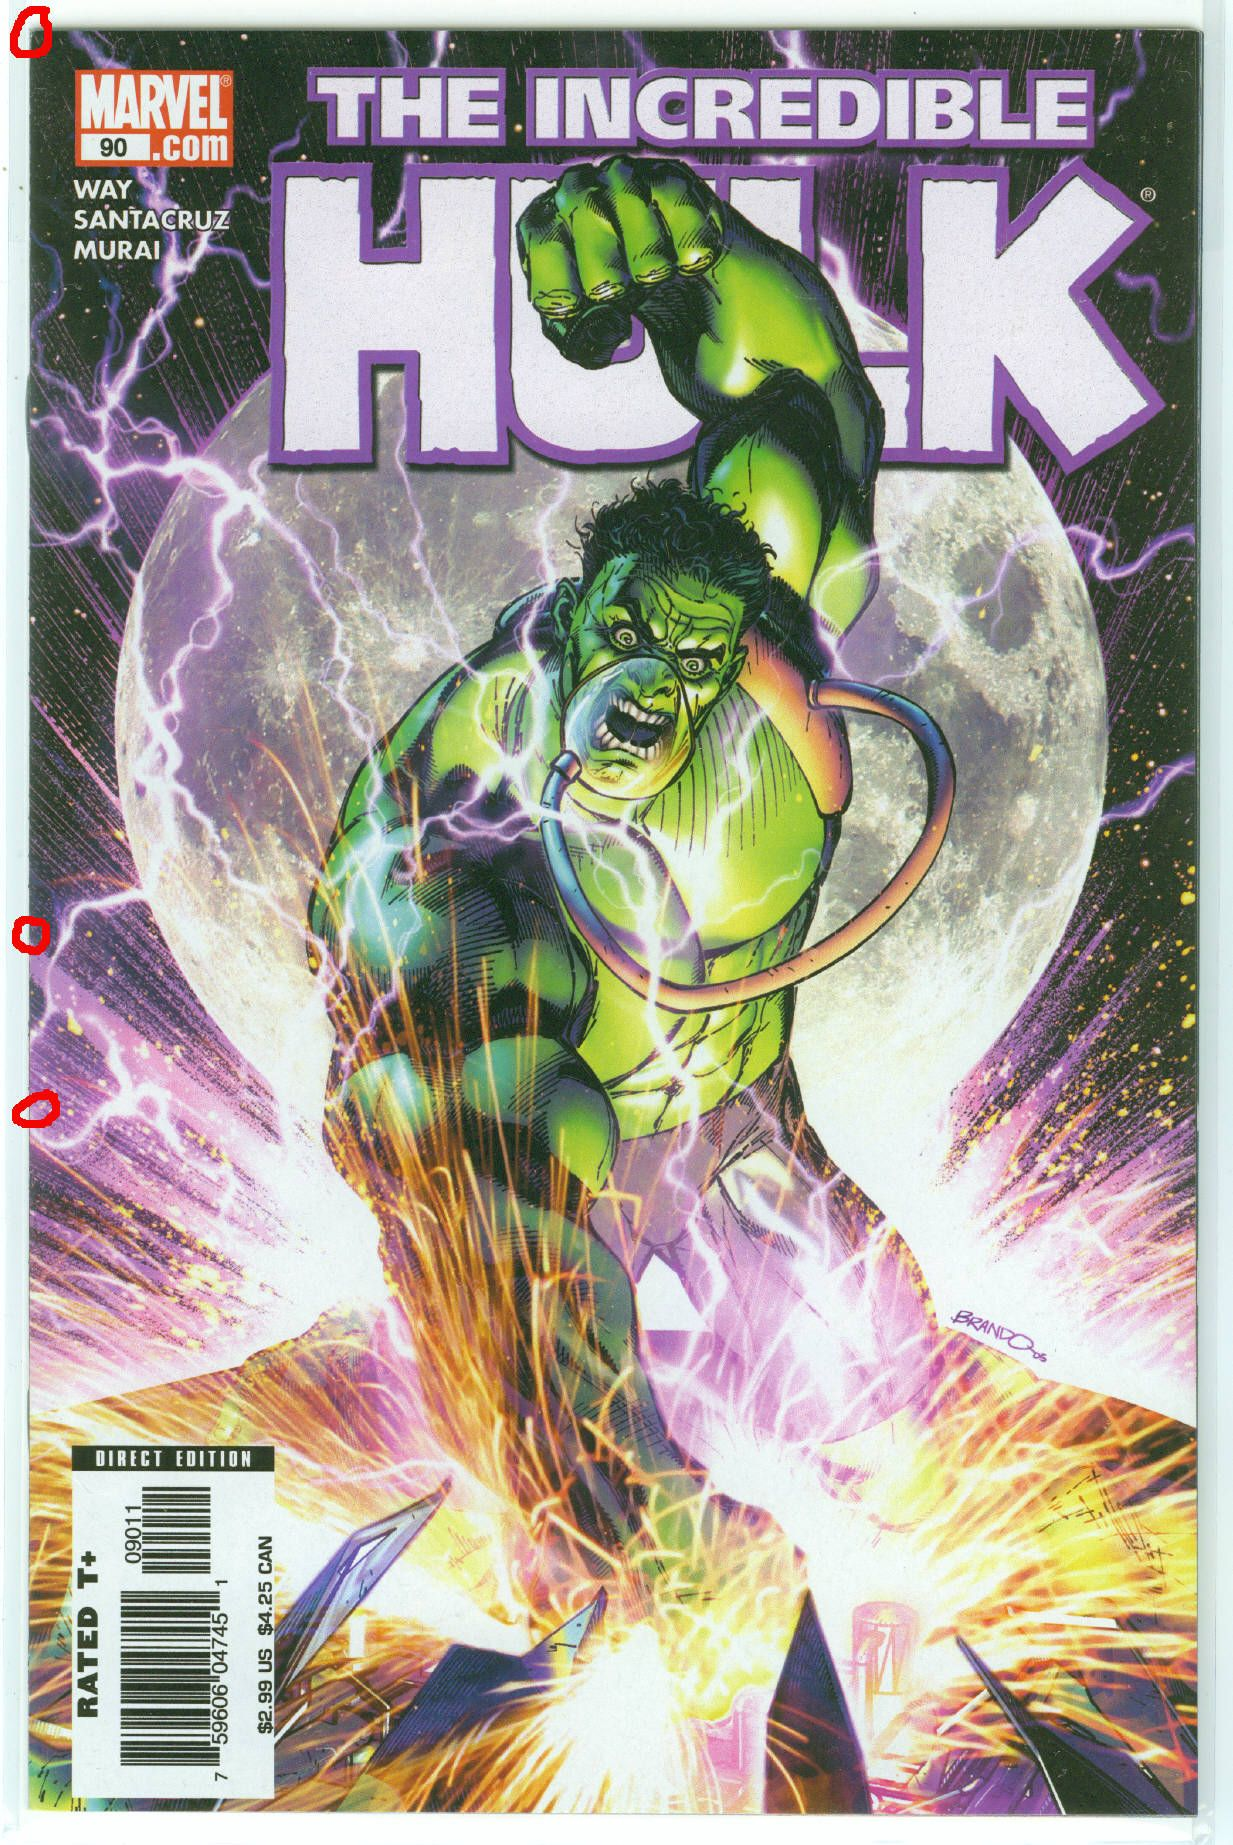 Title: Incredible Hulk | Year: 2000 | Publisher: Marvel | Number: 90 |  Print: 1 | Type: Regular | TitleId: 67965814-c6b7-468a-a2c1-9d3984f36d57